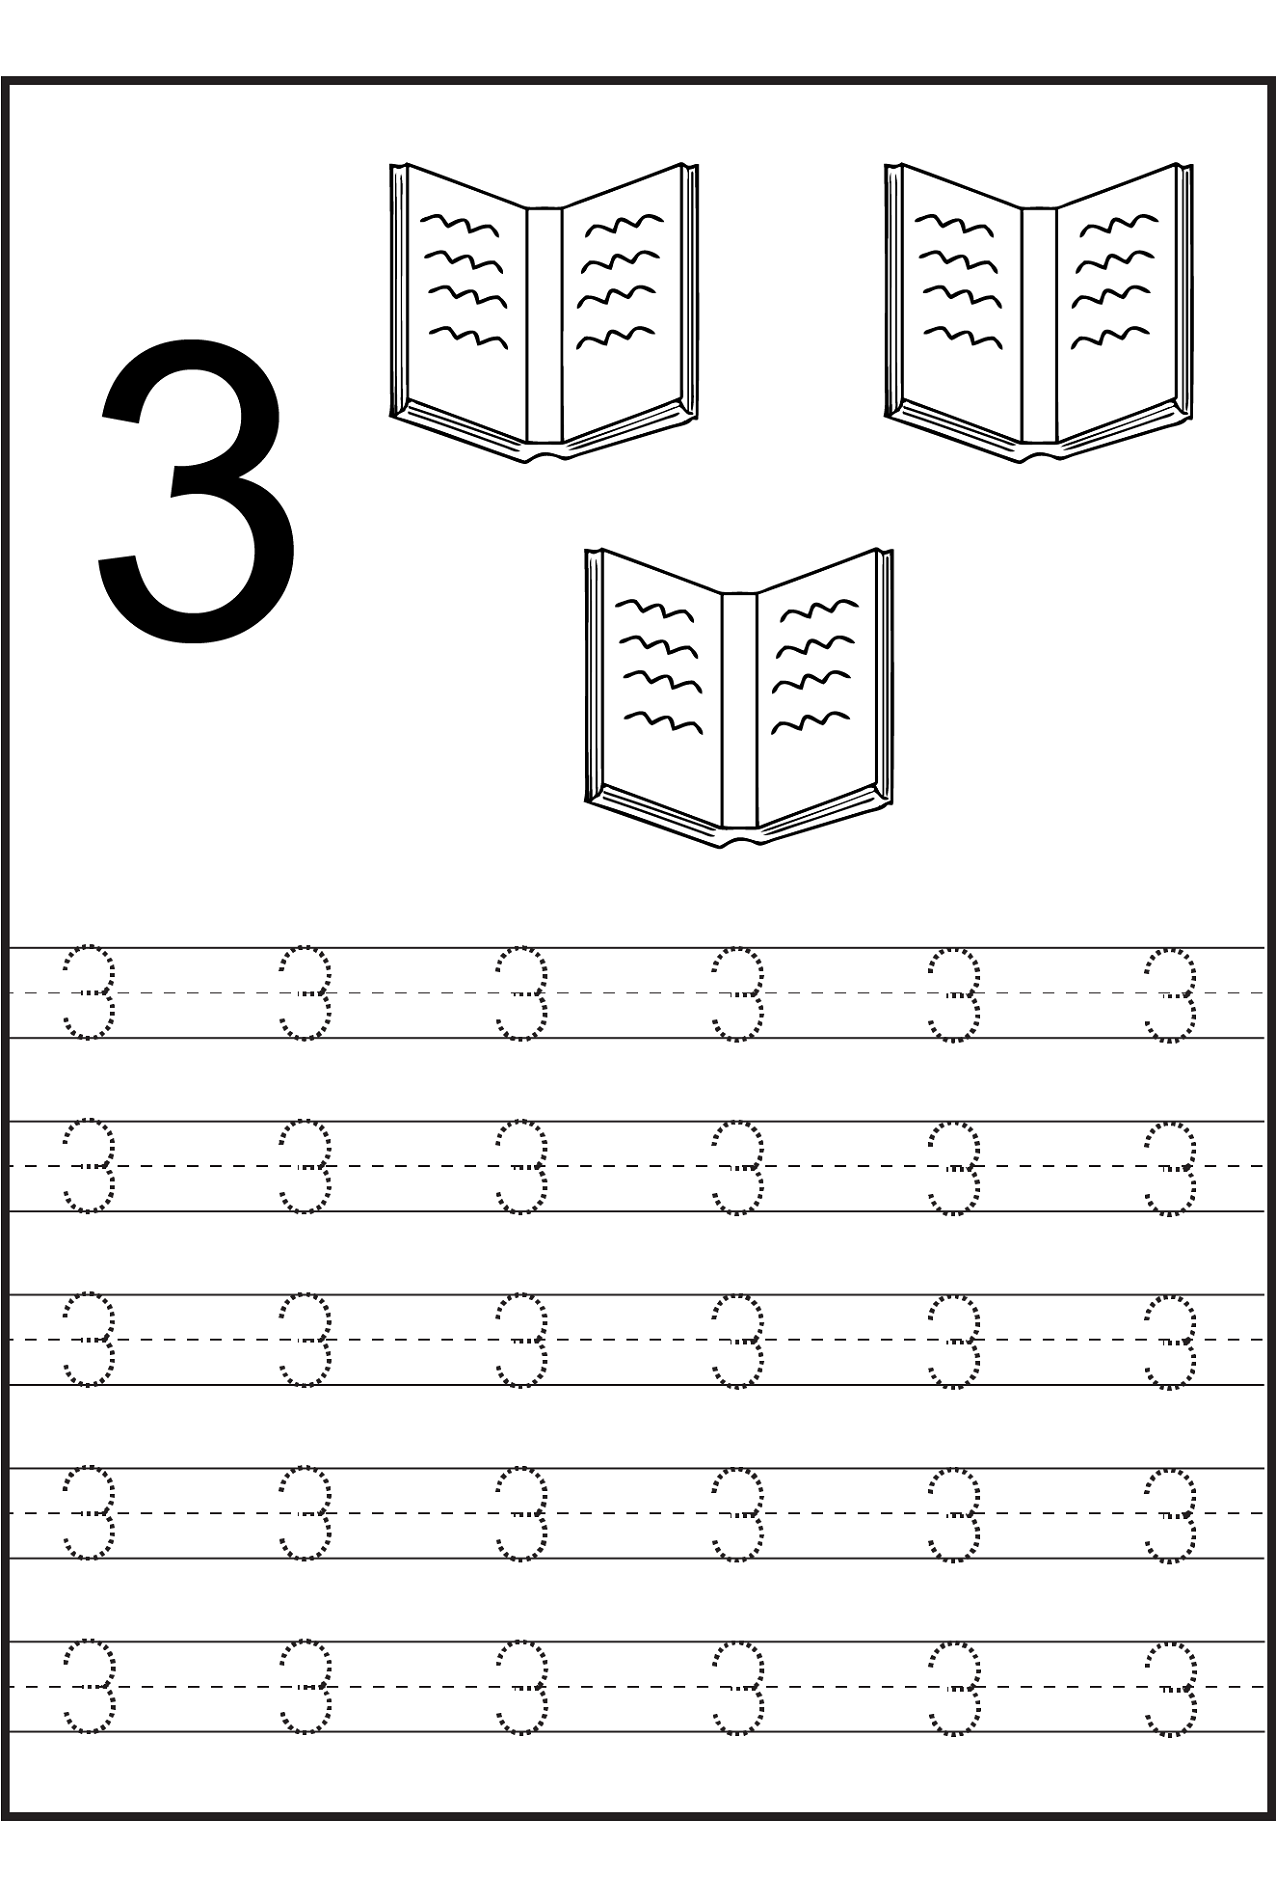 Worksheets for 2 Years Old Kindergarten worksheets